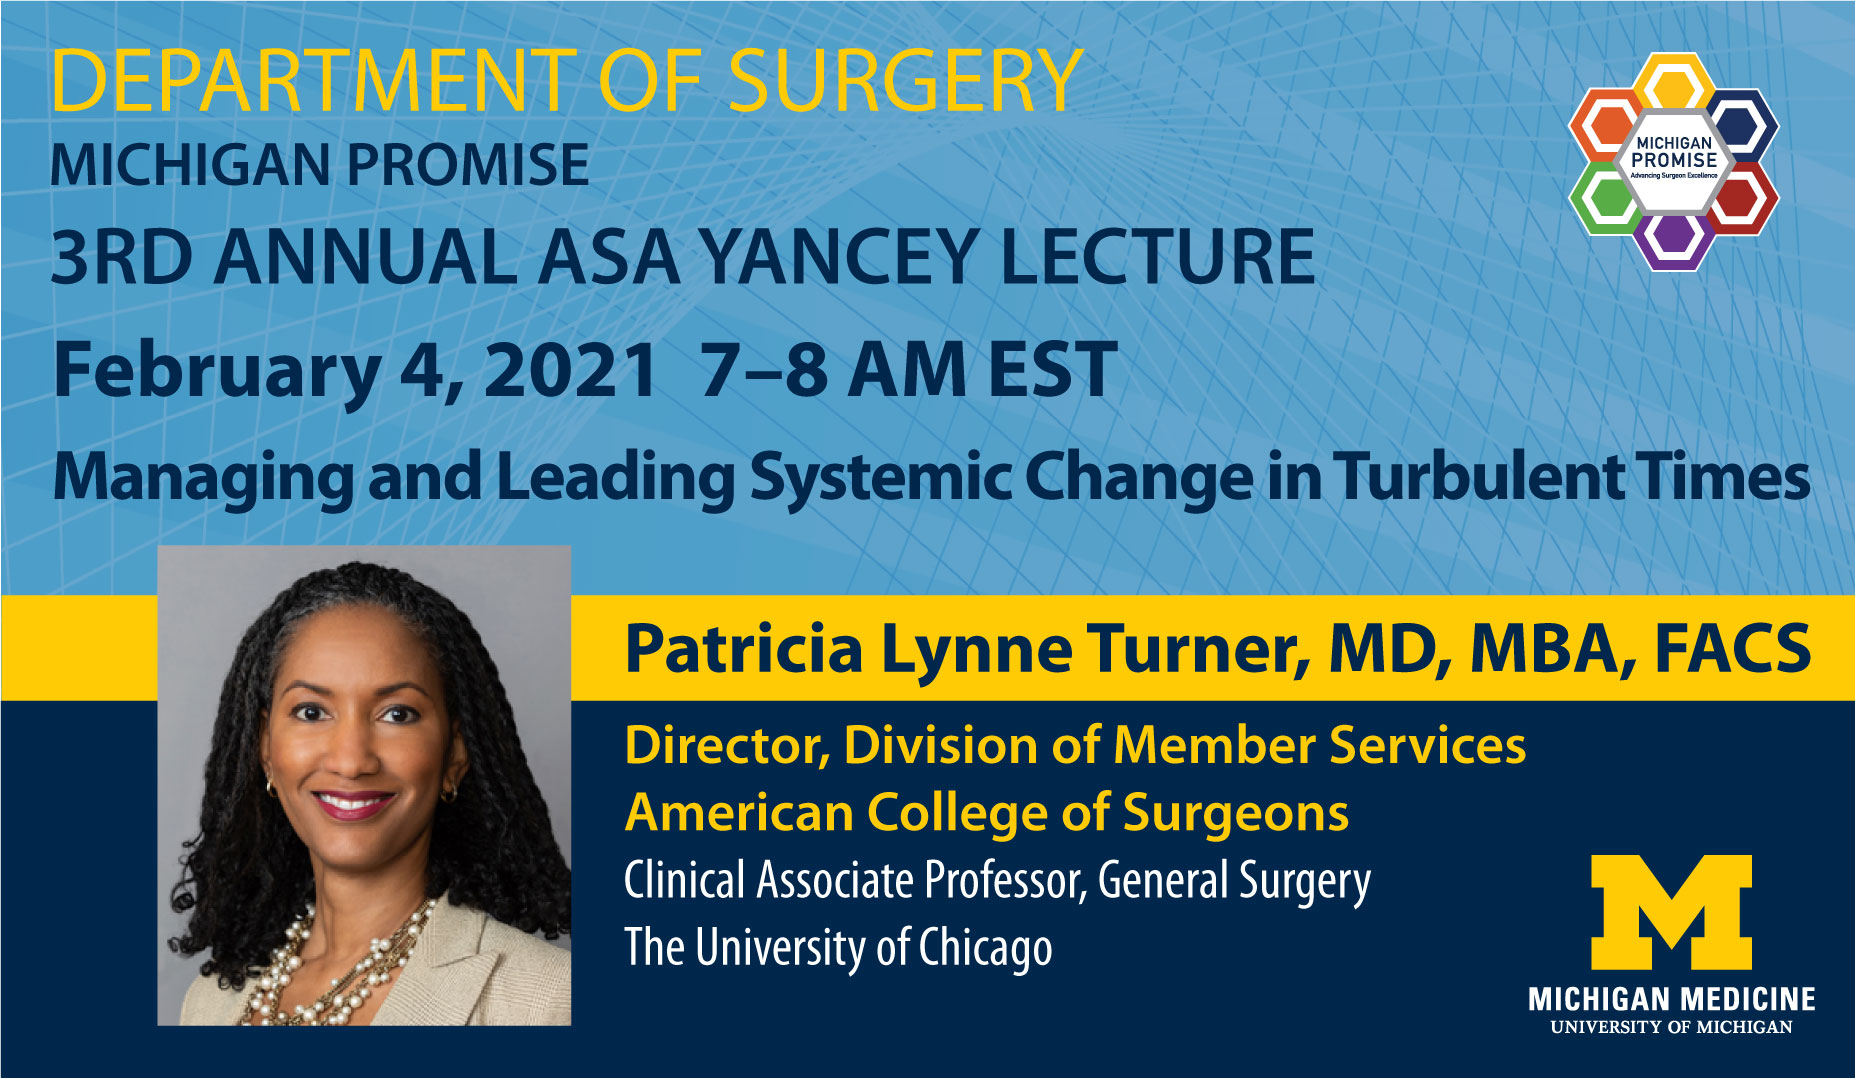 """Michigan Medicine Department of Surgery Michigan Promise 3rd Annual Asa Yancey Lecture February 4, 2021, 7-8 AM EST """"Managing and Leading Systemic Change in Turbulent Times"""" by Patricia Lynne Turner, MD, MBA, FACS"""